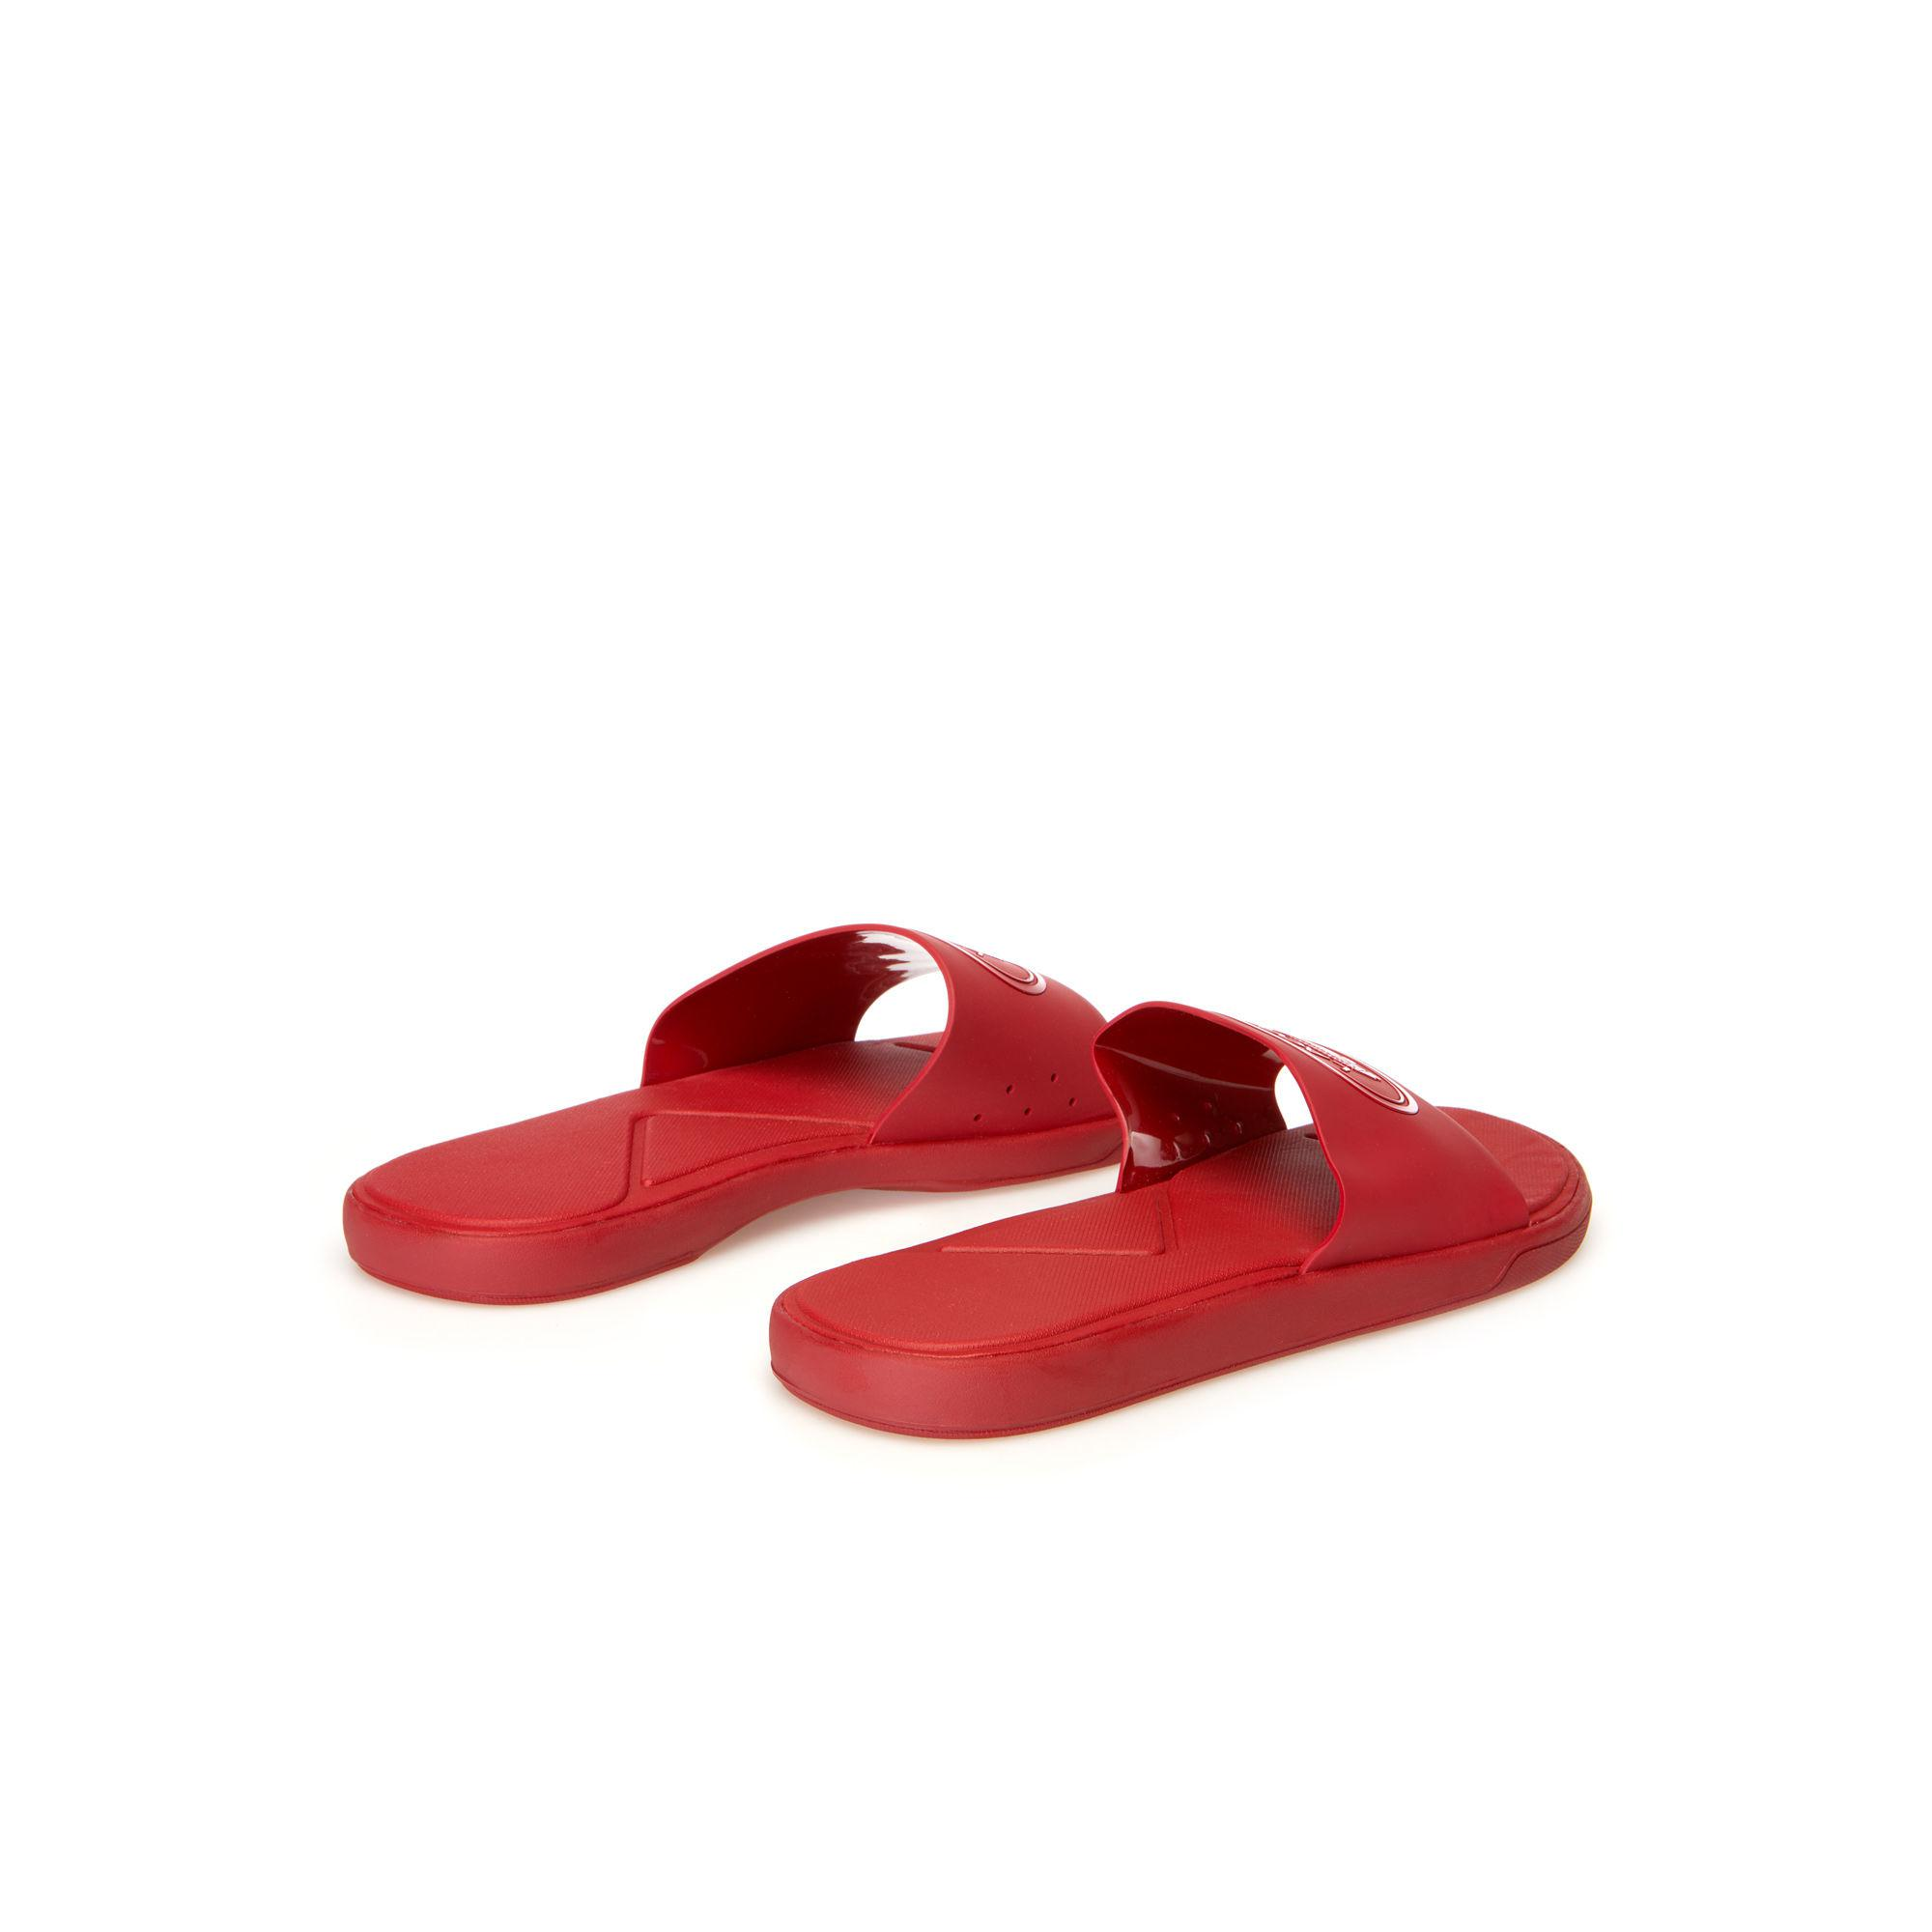 58bec0f819d7dc Lyst - Lacoste L.30 Synthetic Slides in Red for Men